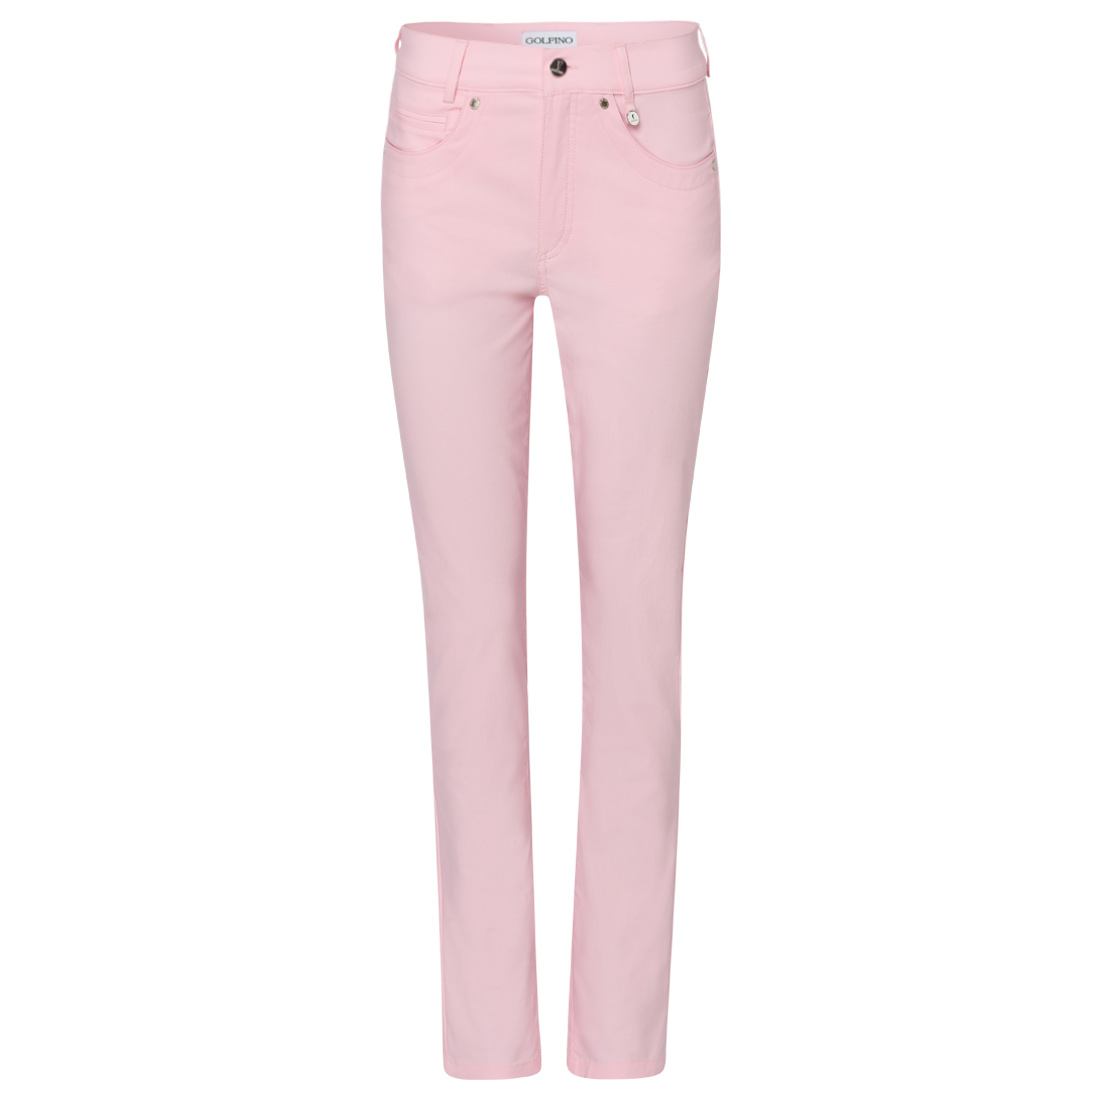 Ladies' trousers in denim look